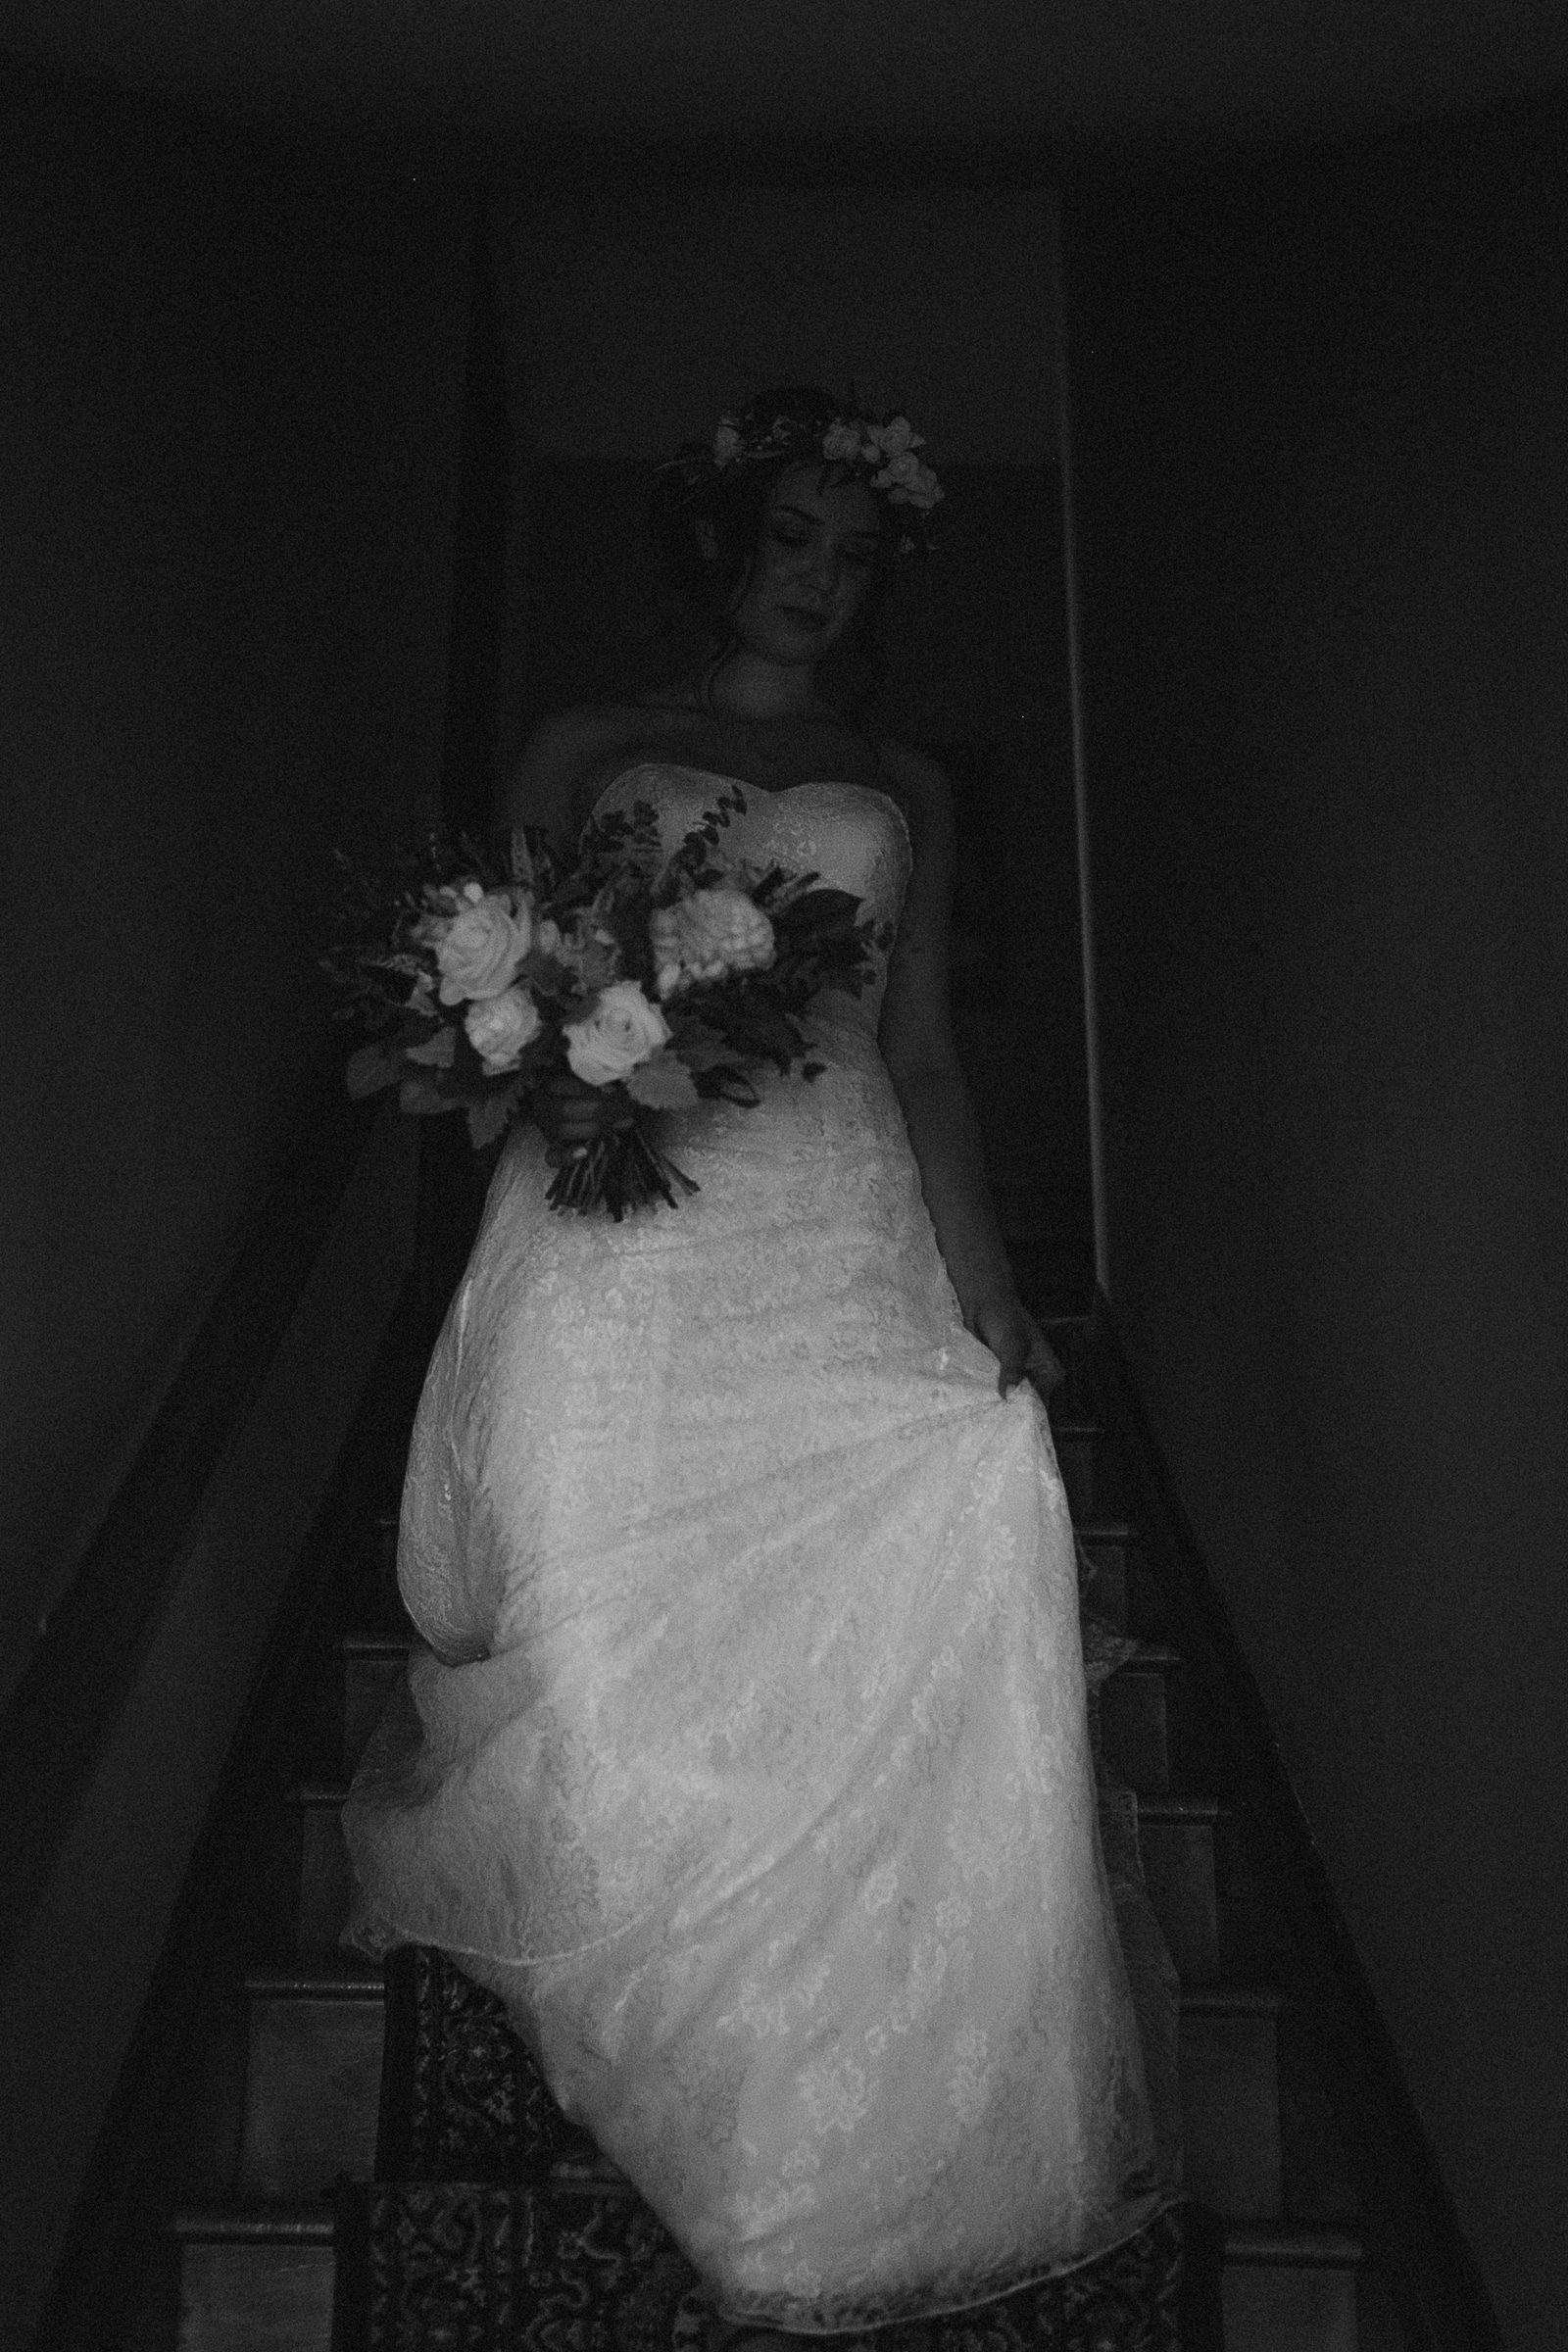 luke-and-jessica-wedding-018.jpg